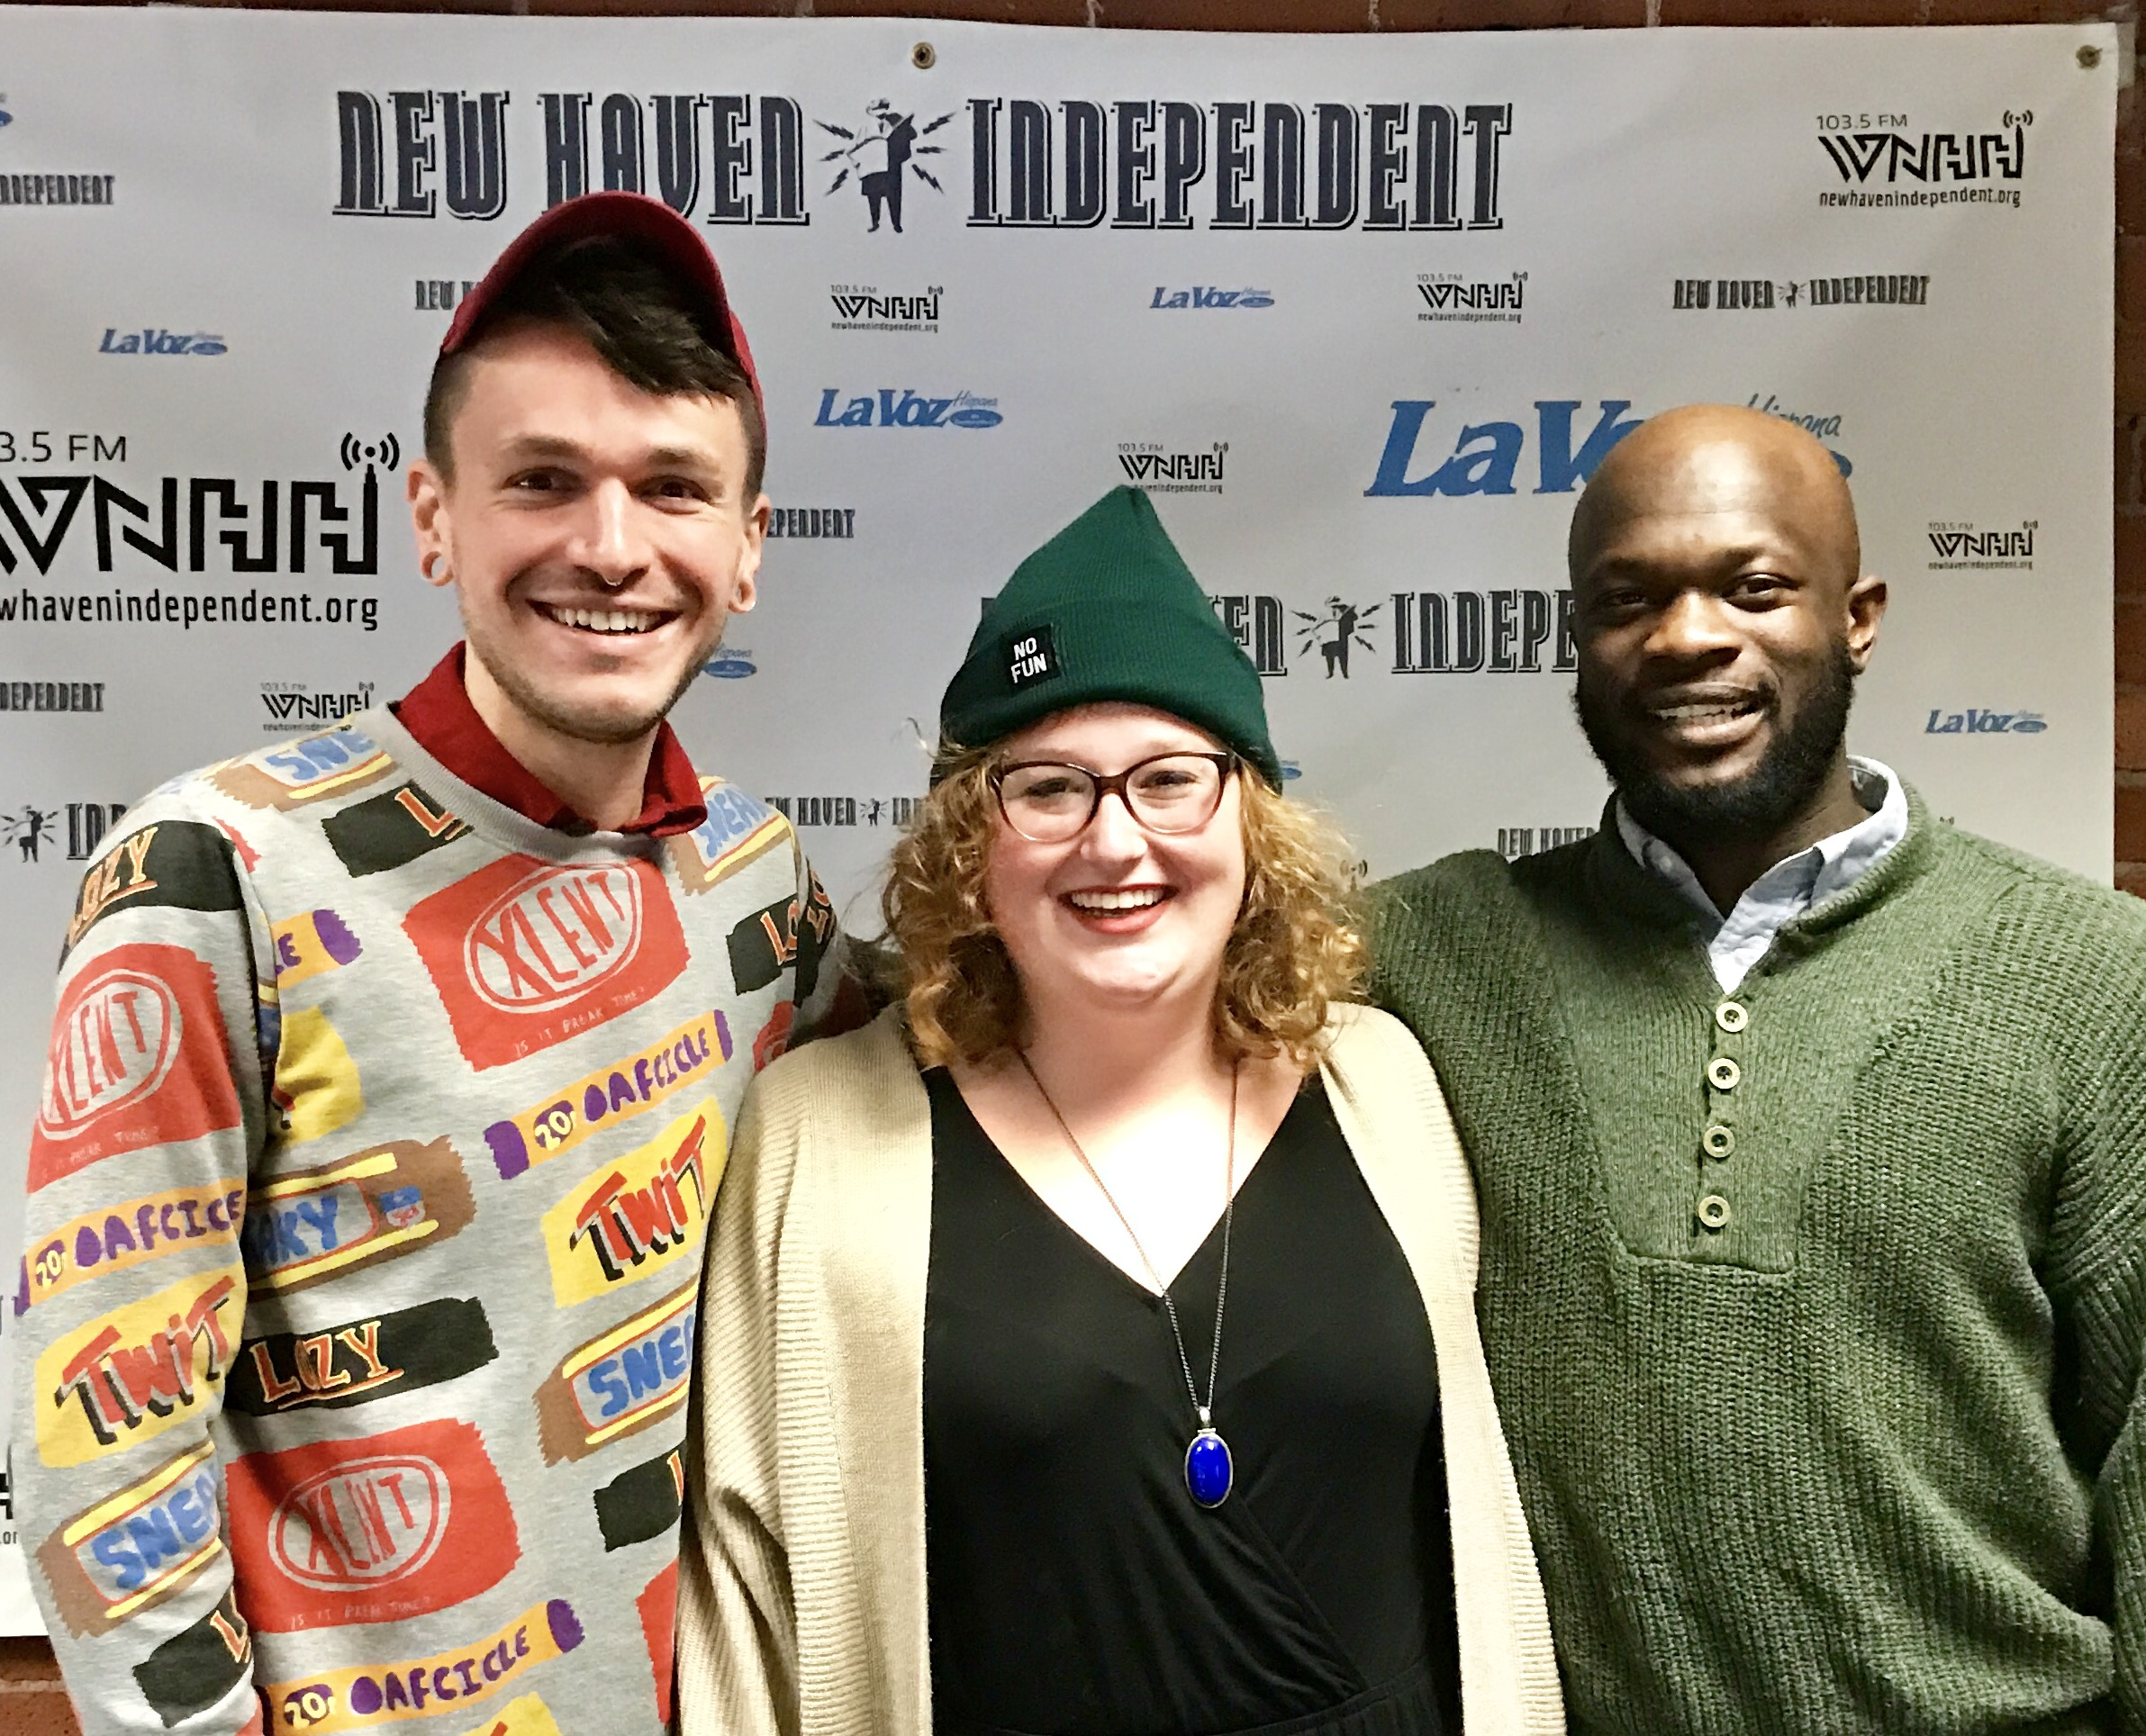 """Today on """"Grounded, A Humanist Radio Show"""" host Chris Stedman & Onyeka Obiocha have a fun filled conversation about music, movies, and the Long Wharf Theatre with guest Elizabeth Nearing, Community Engagement Manager of Long Wharf Theatre."""